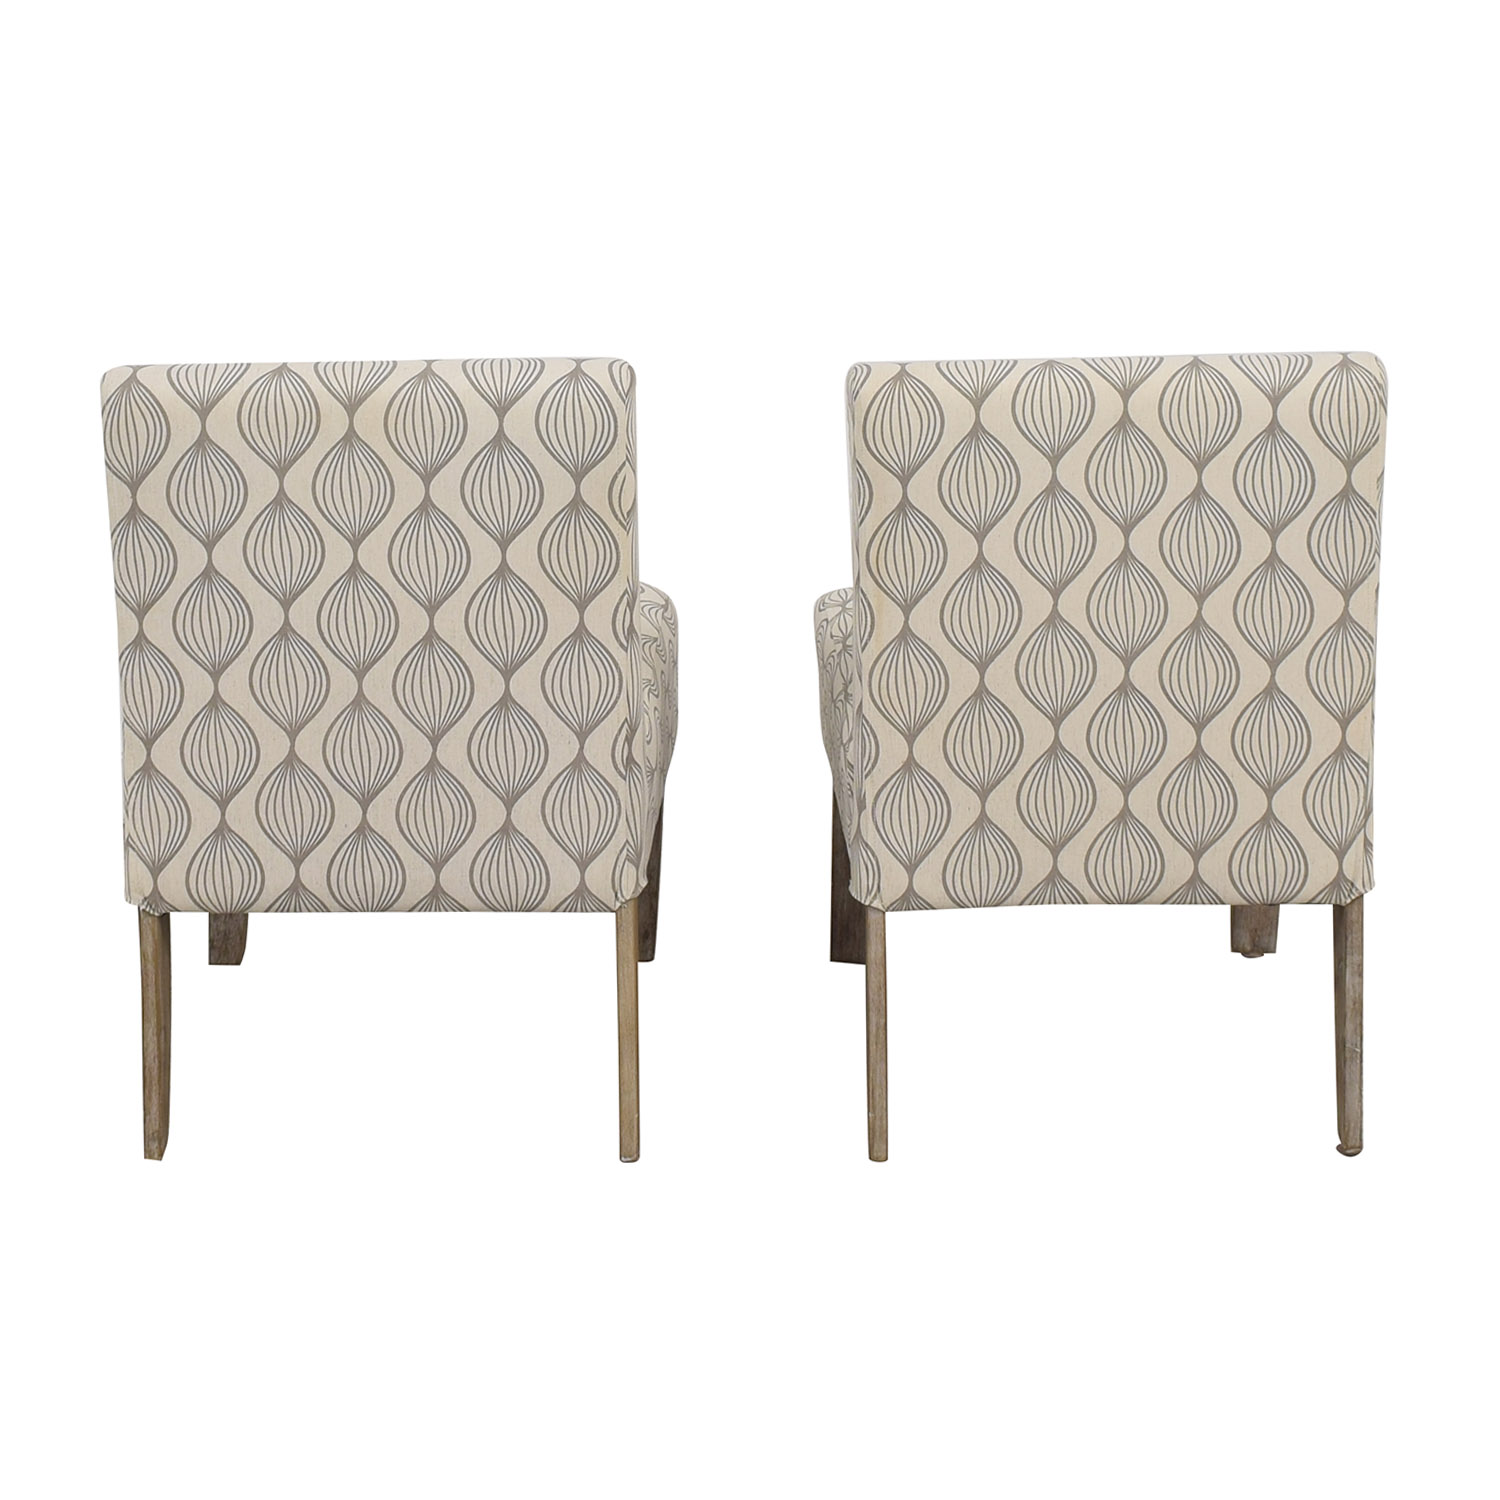 buy Dwell Home Furnishings Dwell Home Chairs online